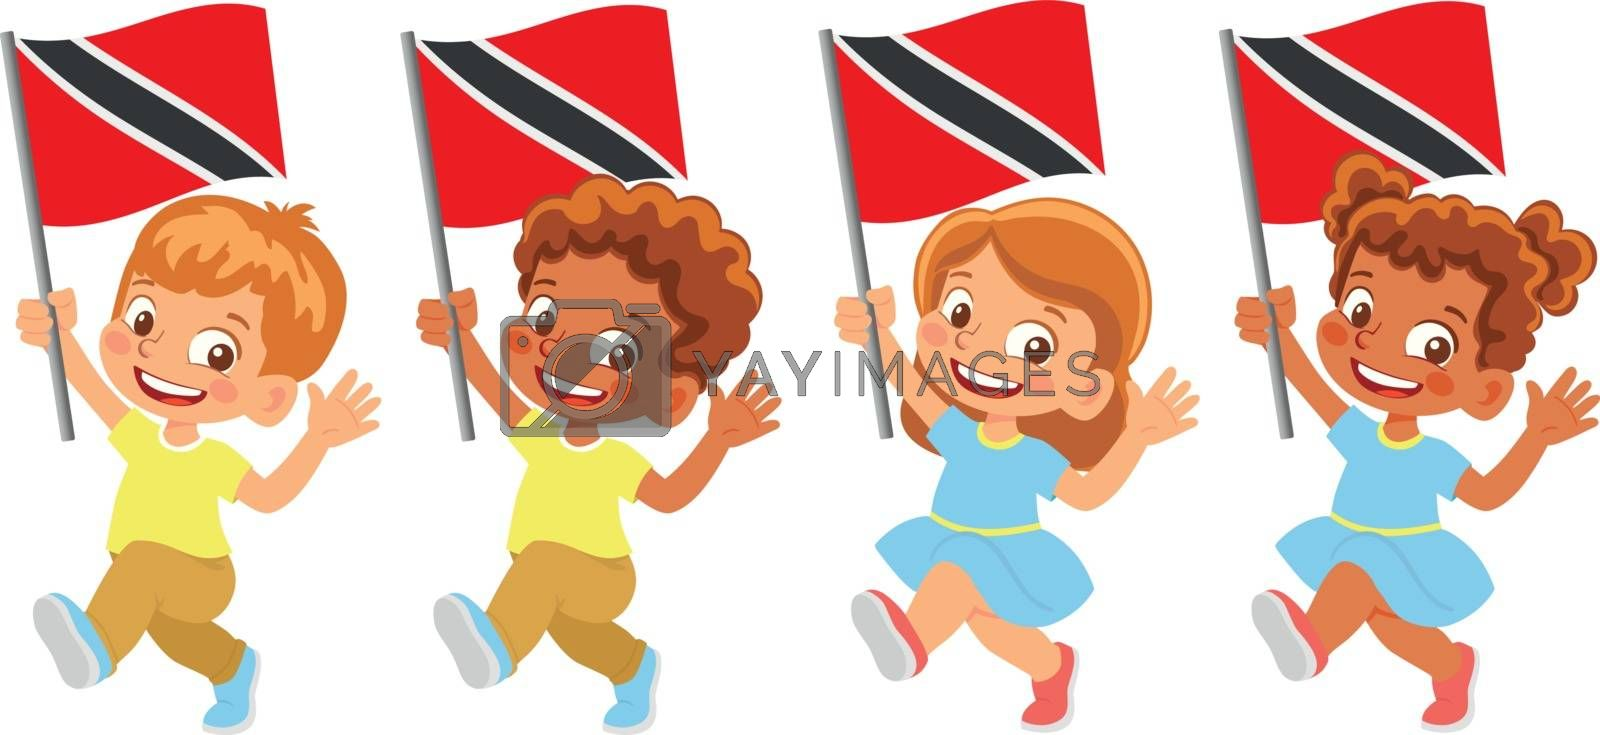 Trinidad and Tobago flag in hand set by Visual-Content